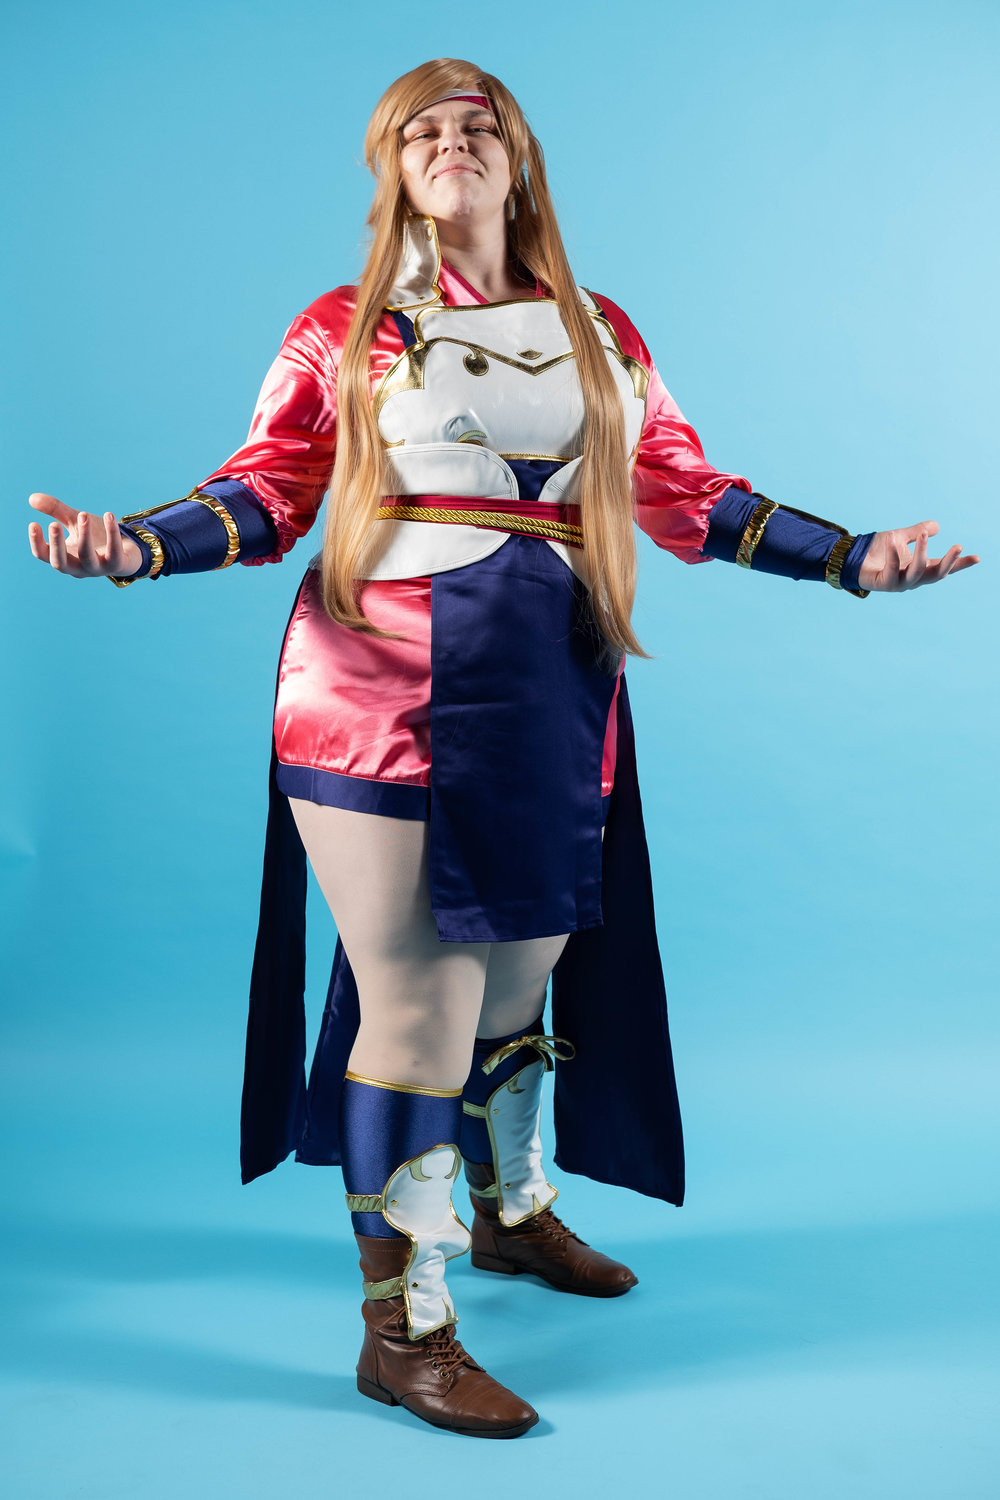 Tacocat Cosplay cosplaying as Hana from Fire Emblem Fates